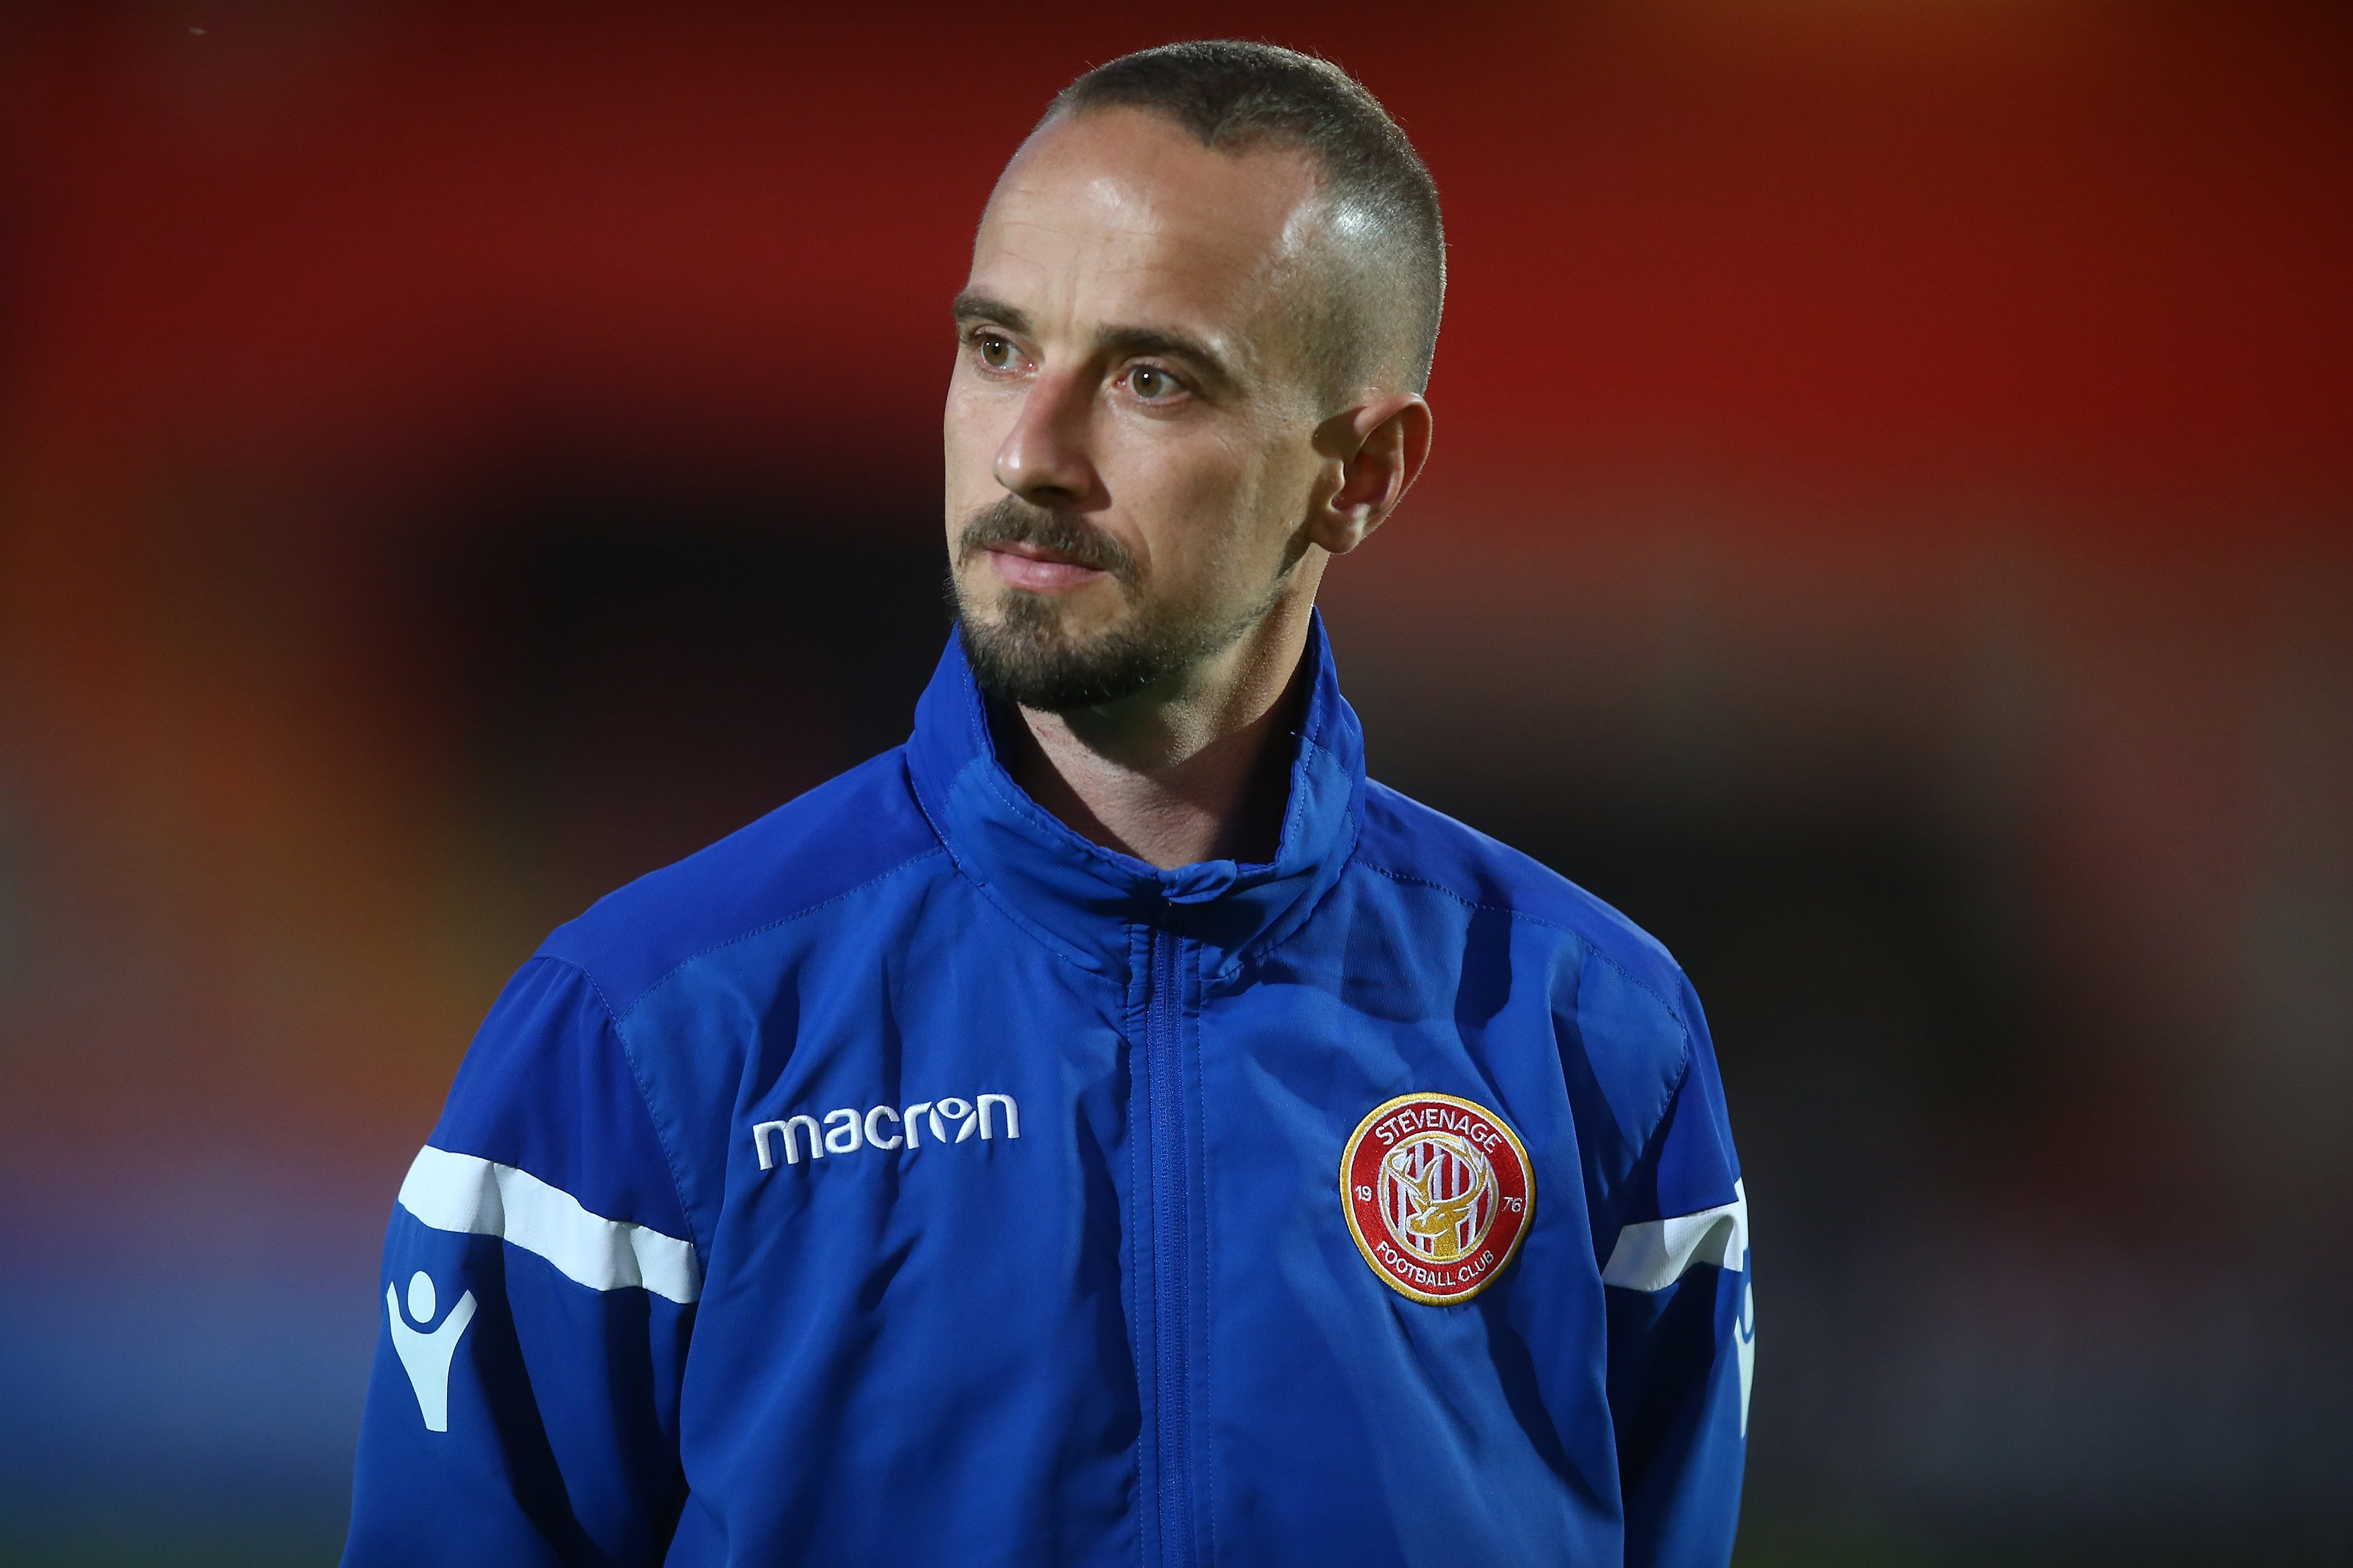 Mark Sampson: Ex-England women's coach charged with racist language